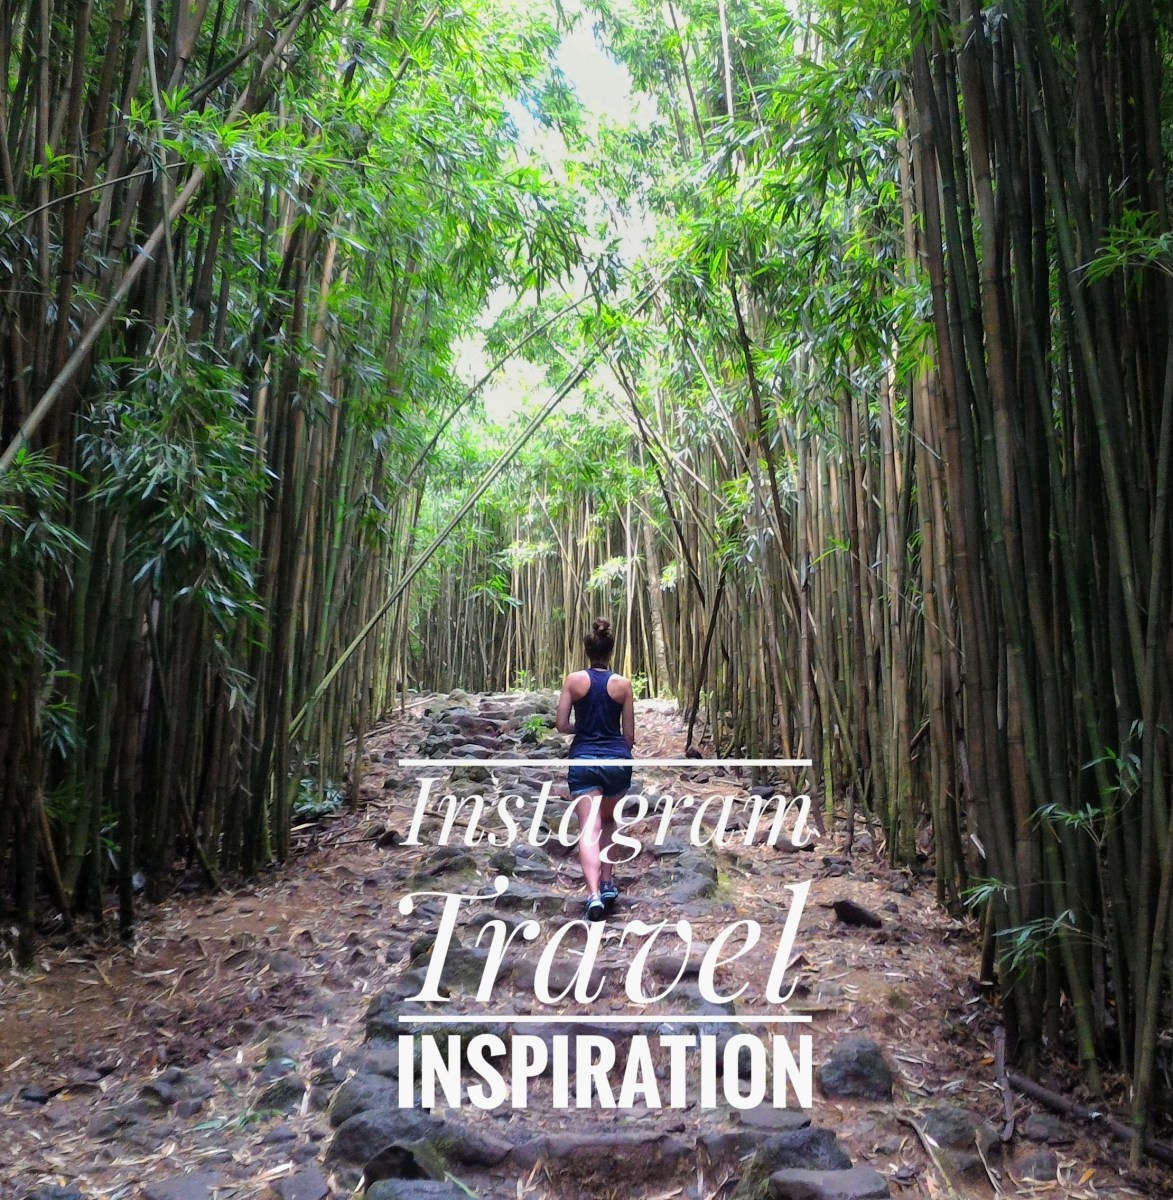 Best Instagram Accounts for Travel Inspiration